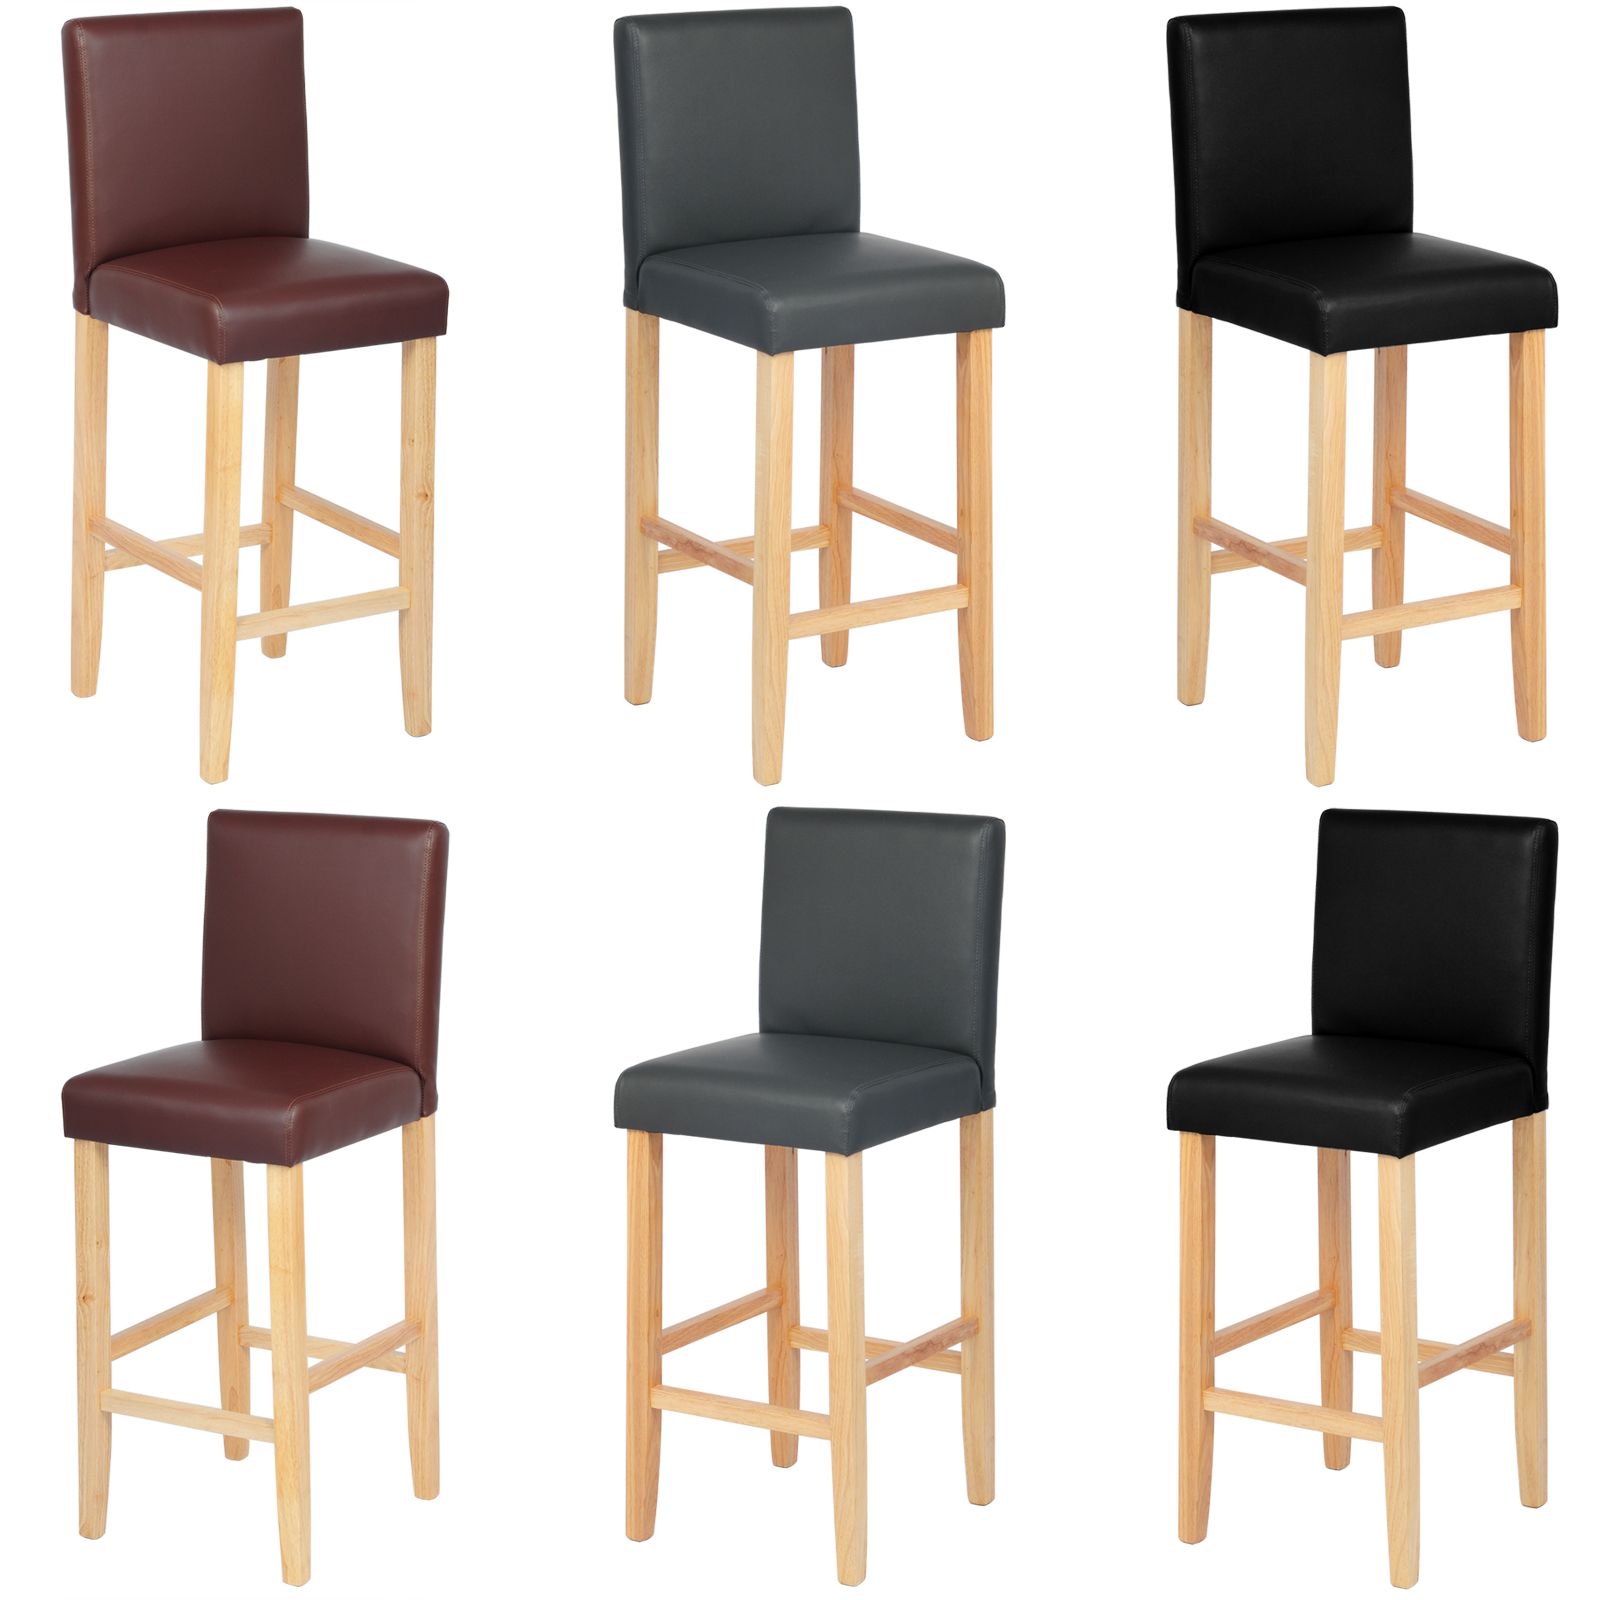 haut tabouret de bar avec dossier haut chaise de bar en. Black Bedroom Furniture Sets. Home Design Ideas